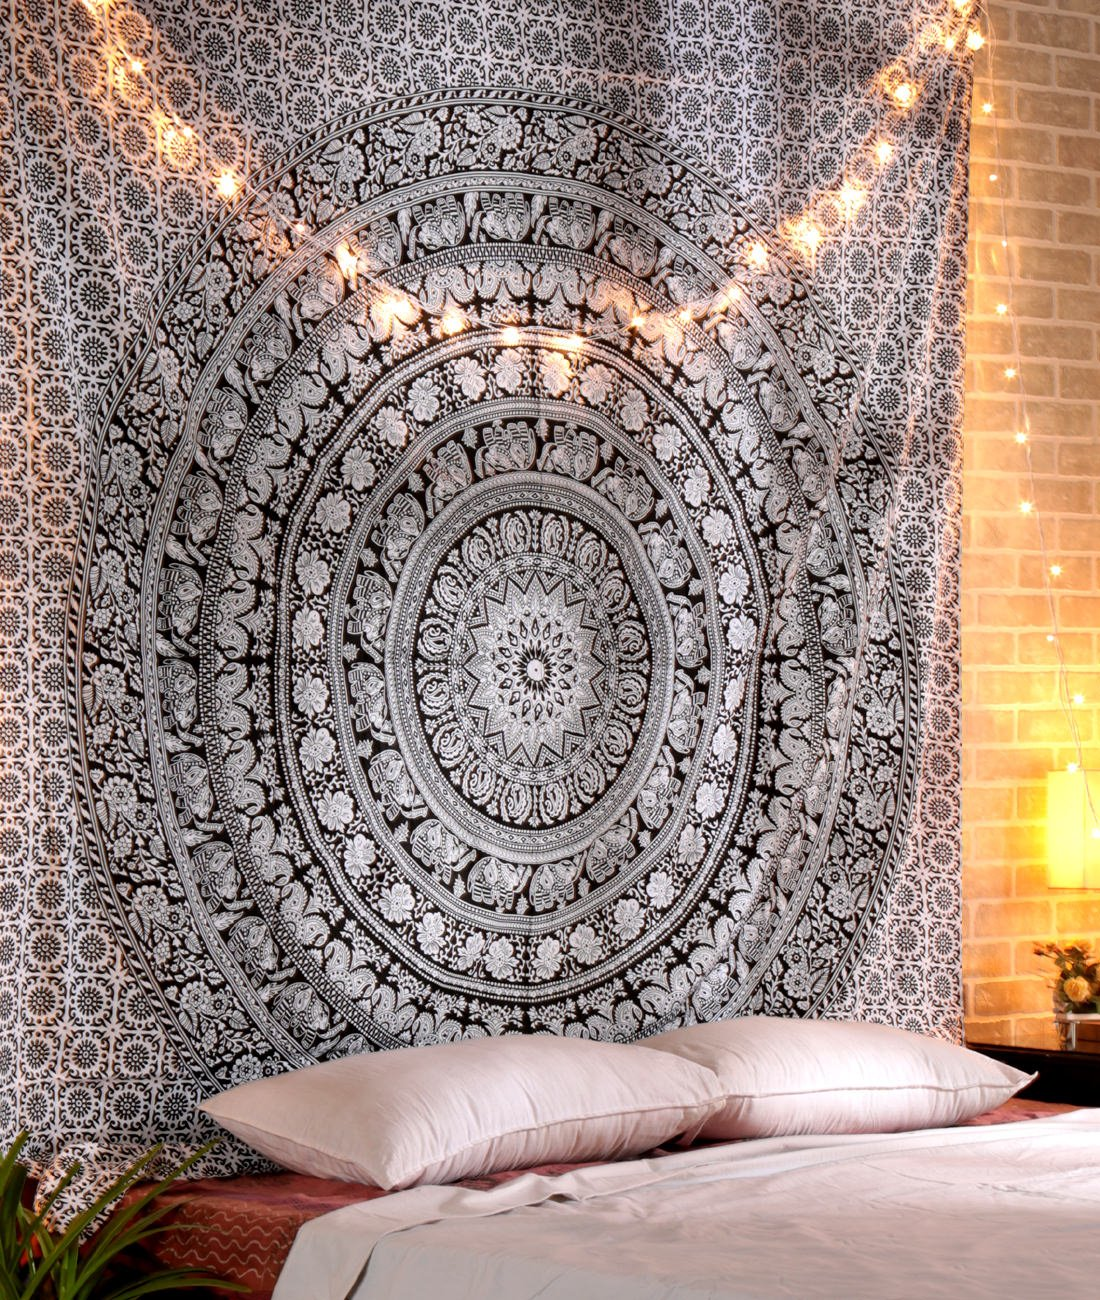 RAJRANG Mandala Tapestry - Large Black and White Elephant Tapestries Decorative Boho Hippie Wall Hanging Indian Queen Size Bedspread Sheet Pure Cotton Bedding 228 x 213 cms